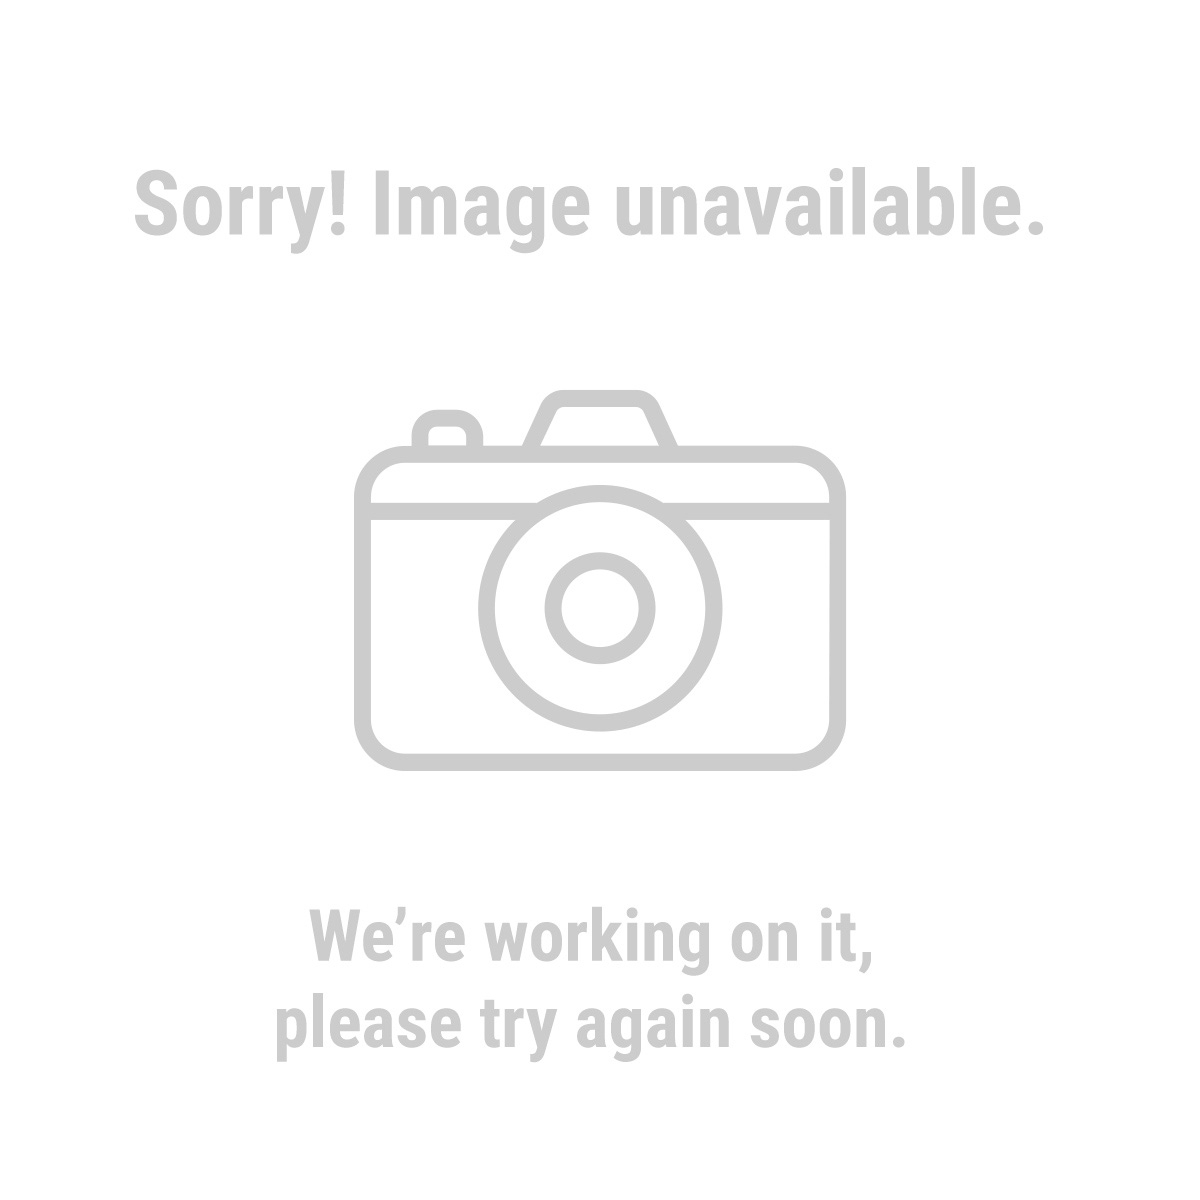 Chicago Electric Welding Systems 95949 Pack of 5 Welding Lens Covers